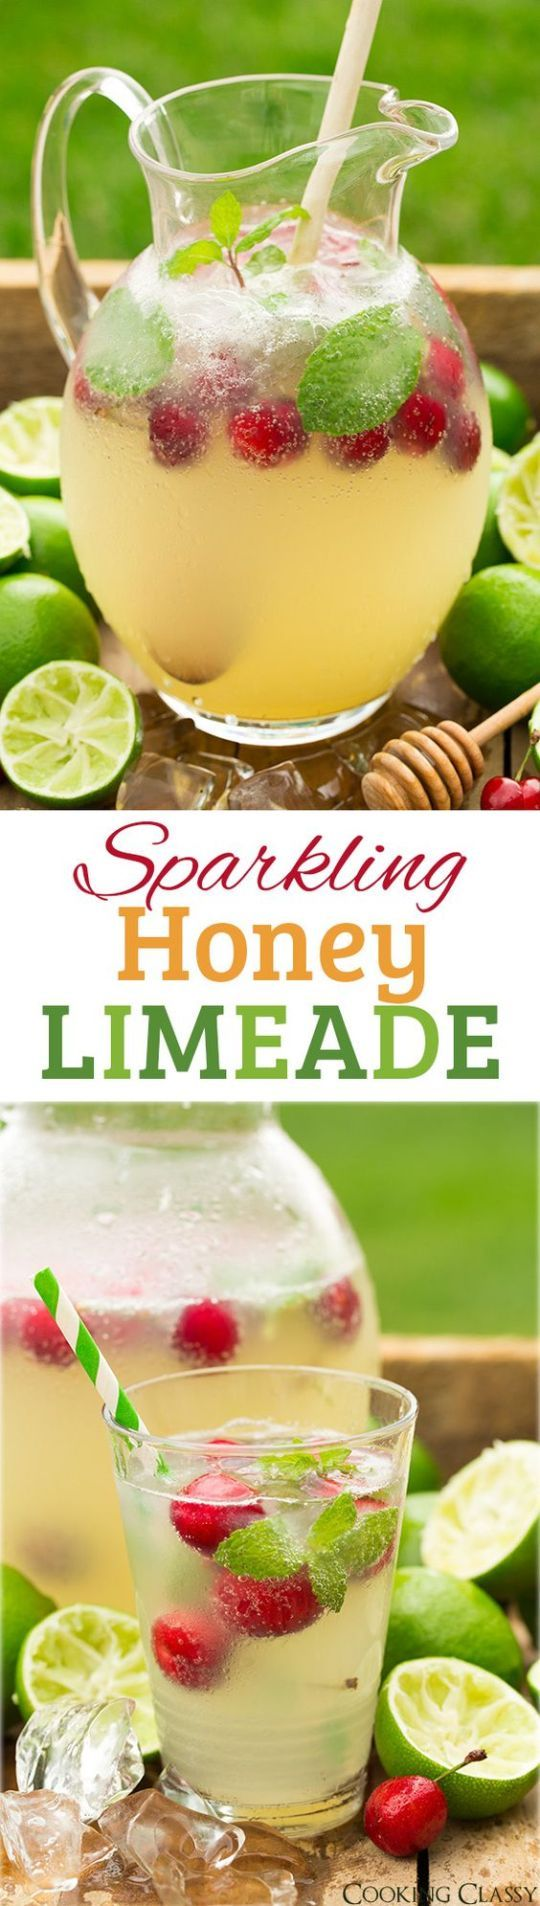 Sparkling Honey Limeade Non Alcoholic Drink Recipe via Cooking Classy - I love this flavor combo! Such a refreshing drink!! The BEST Easy Non-Alcoholic Drinks Recipes - Creative Mocktails and Family Friendly, Alcohol-Free, Big Batch Party Beverages for a Crowd!